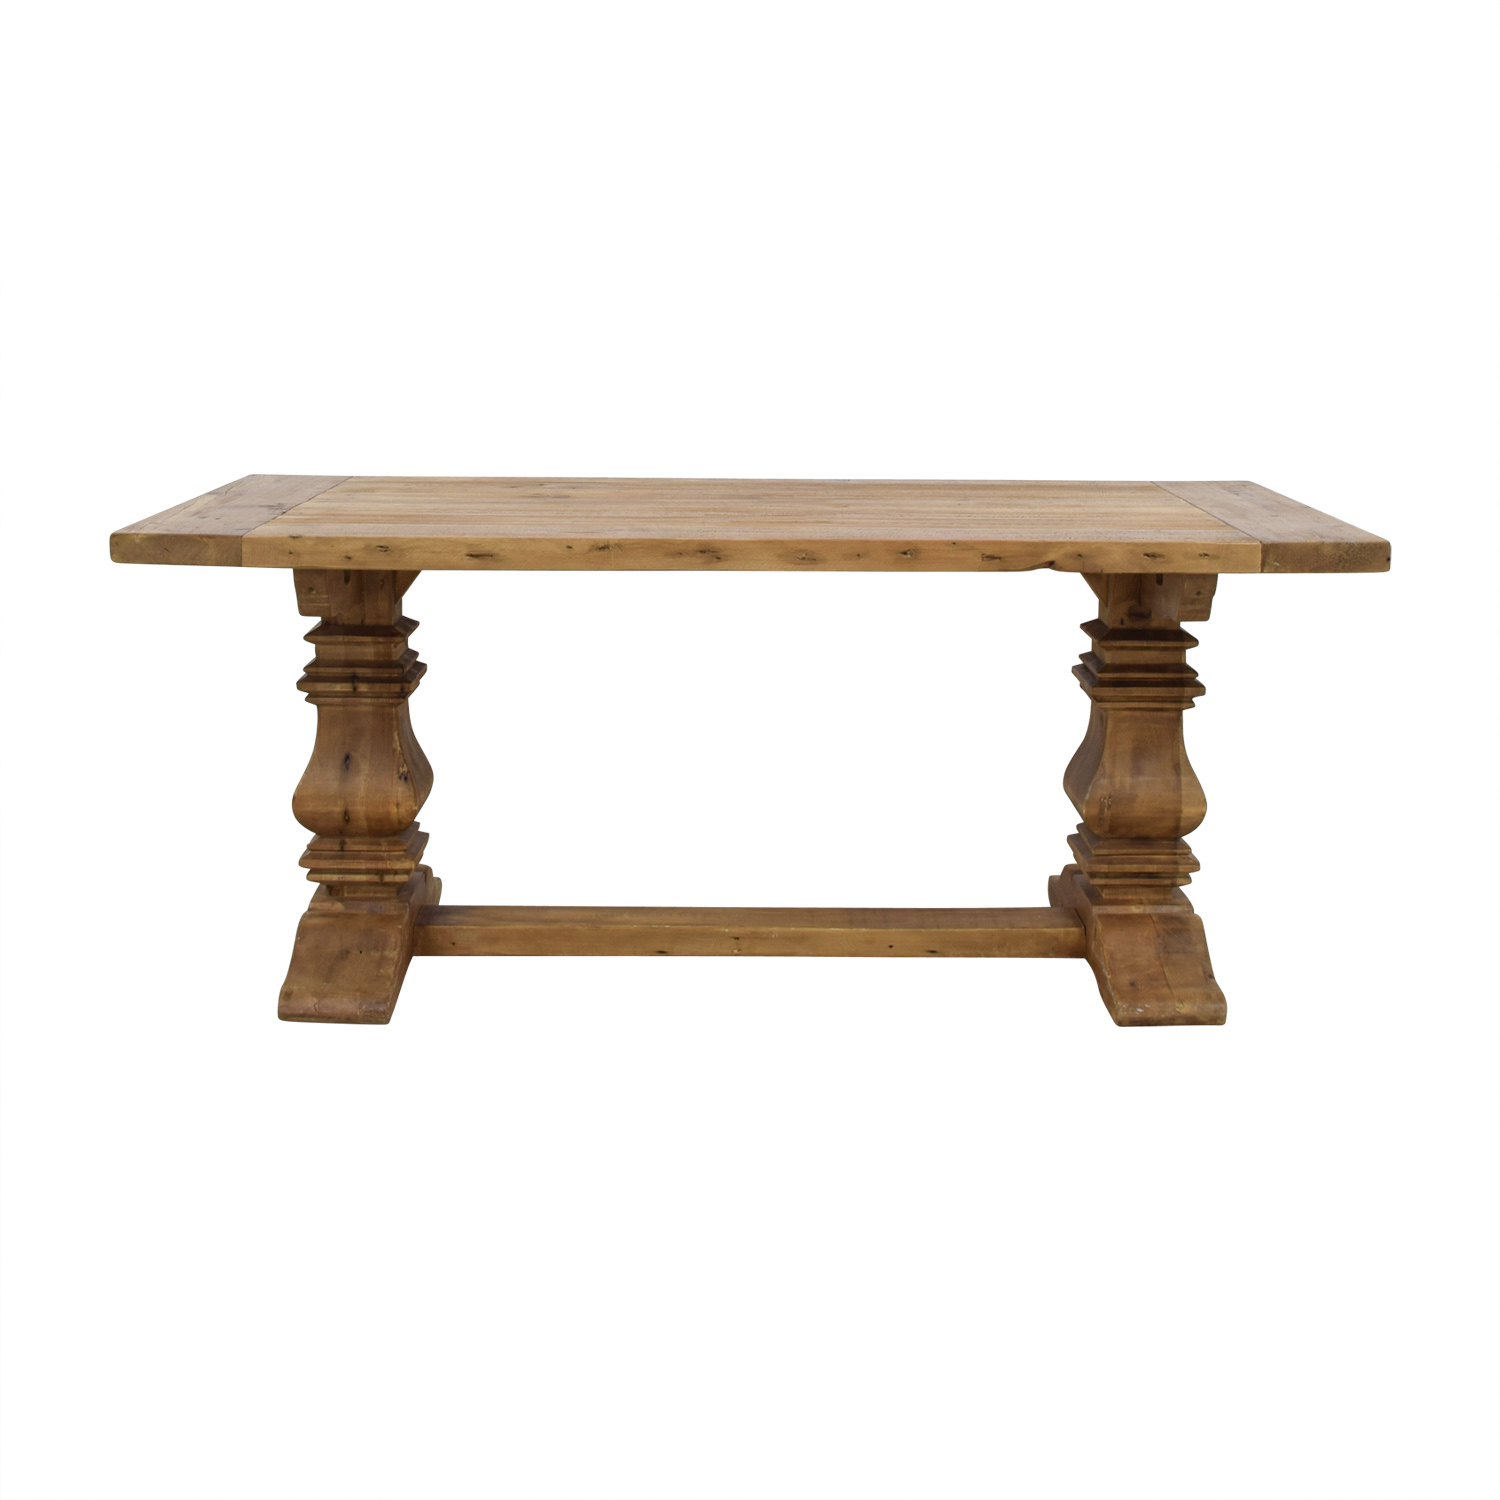 Restoration Hardware Restoration Hardware Salvaged Wood Trestle Extendable Dining Table on sale